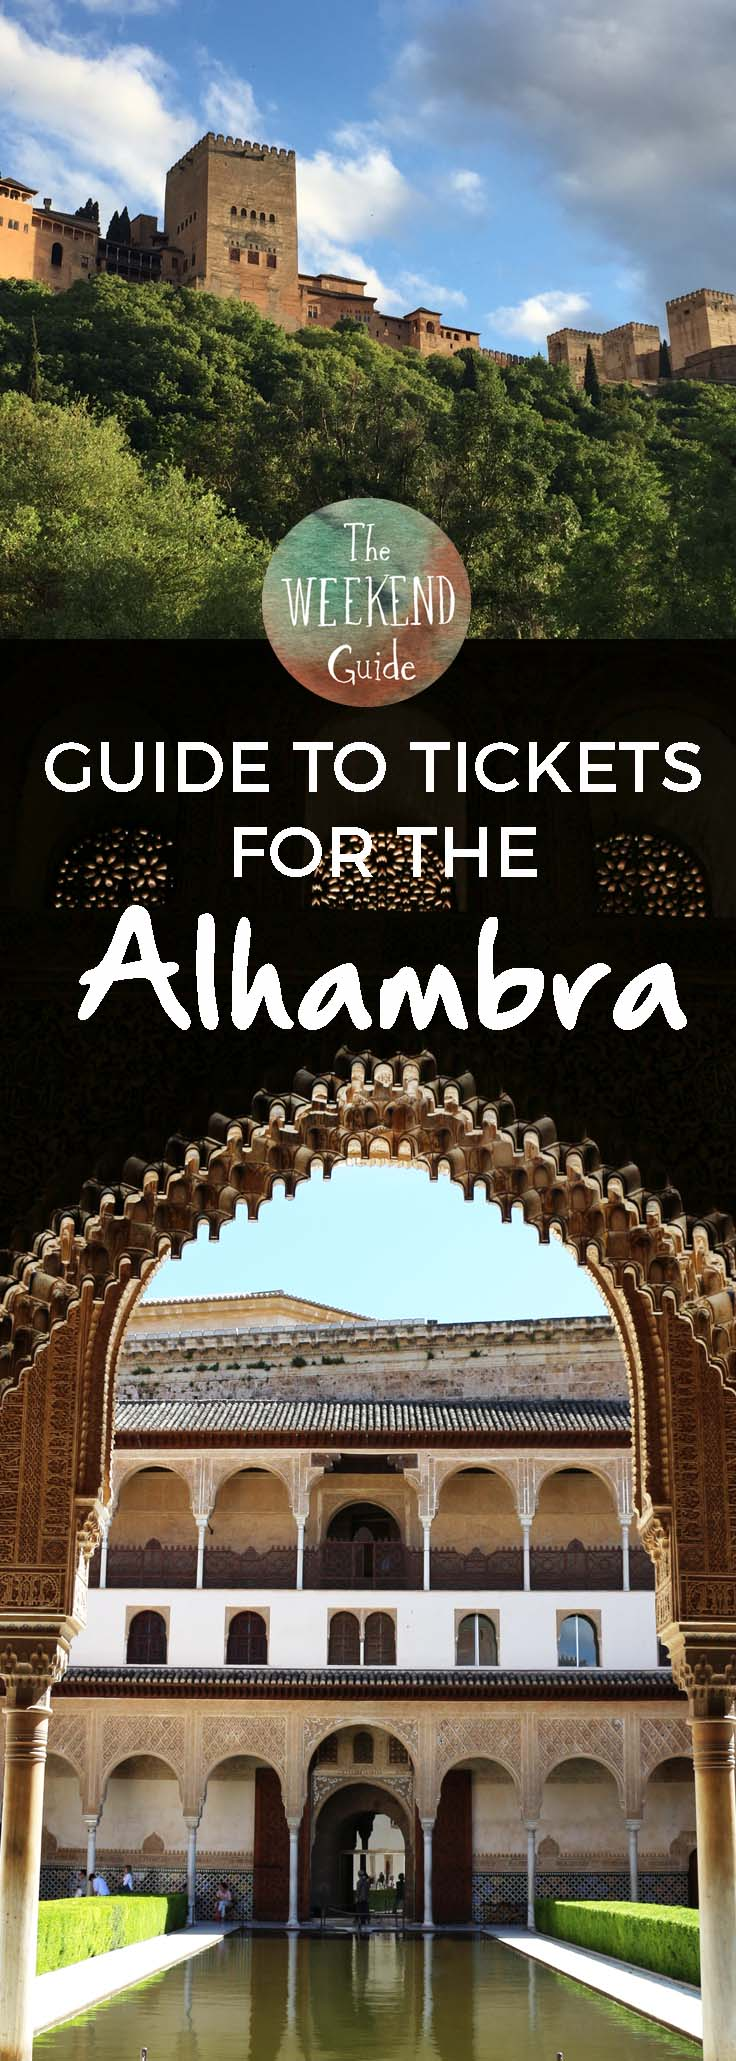 The Alhambra is said to be the most visited monument in Spain. And with good reason. This amazing place is a UNESCO World Heritage Site and is full of history and beauty. Perhaps you have already heard that you must book your Alhambra tickets in advance, sometimes up to a month or two ahead of your visit. Here are our tips for getting tickets and visiting the Alhambra in Granada even if you didn't plan ahead. - theweekendguide.com